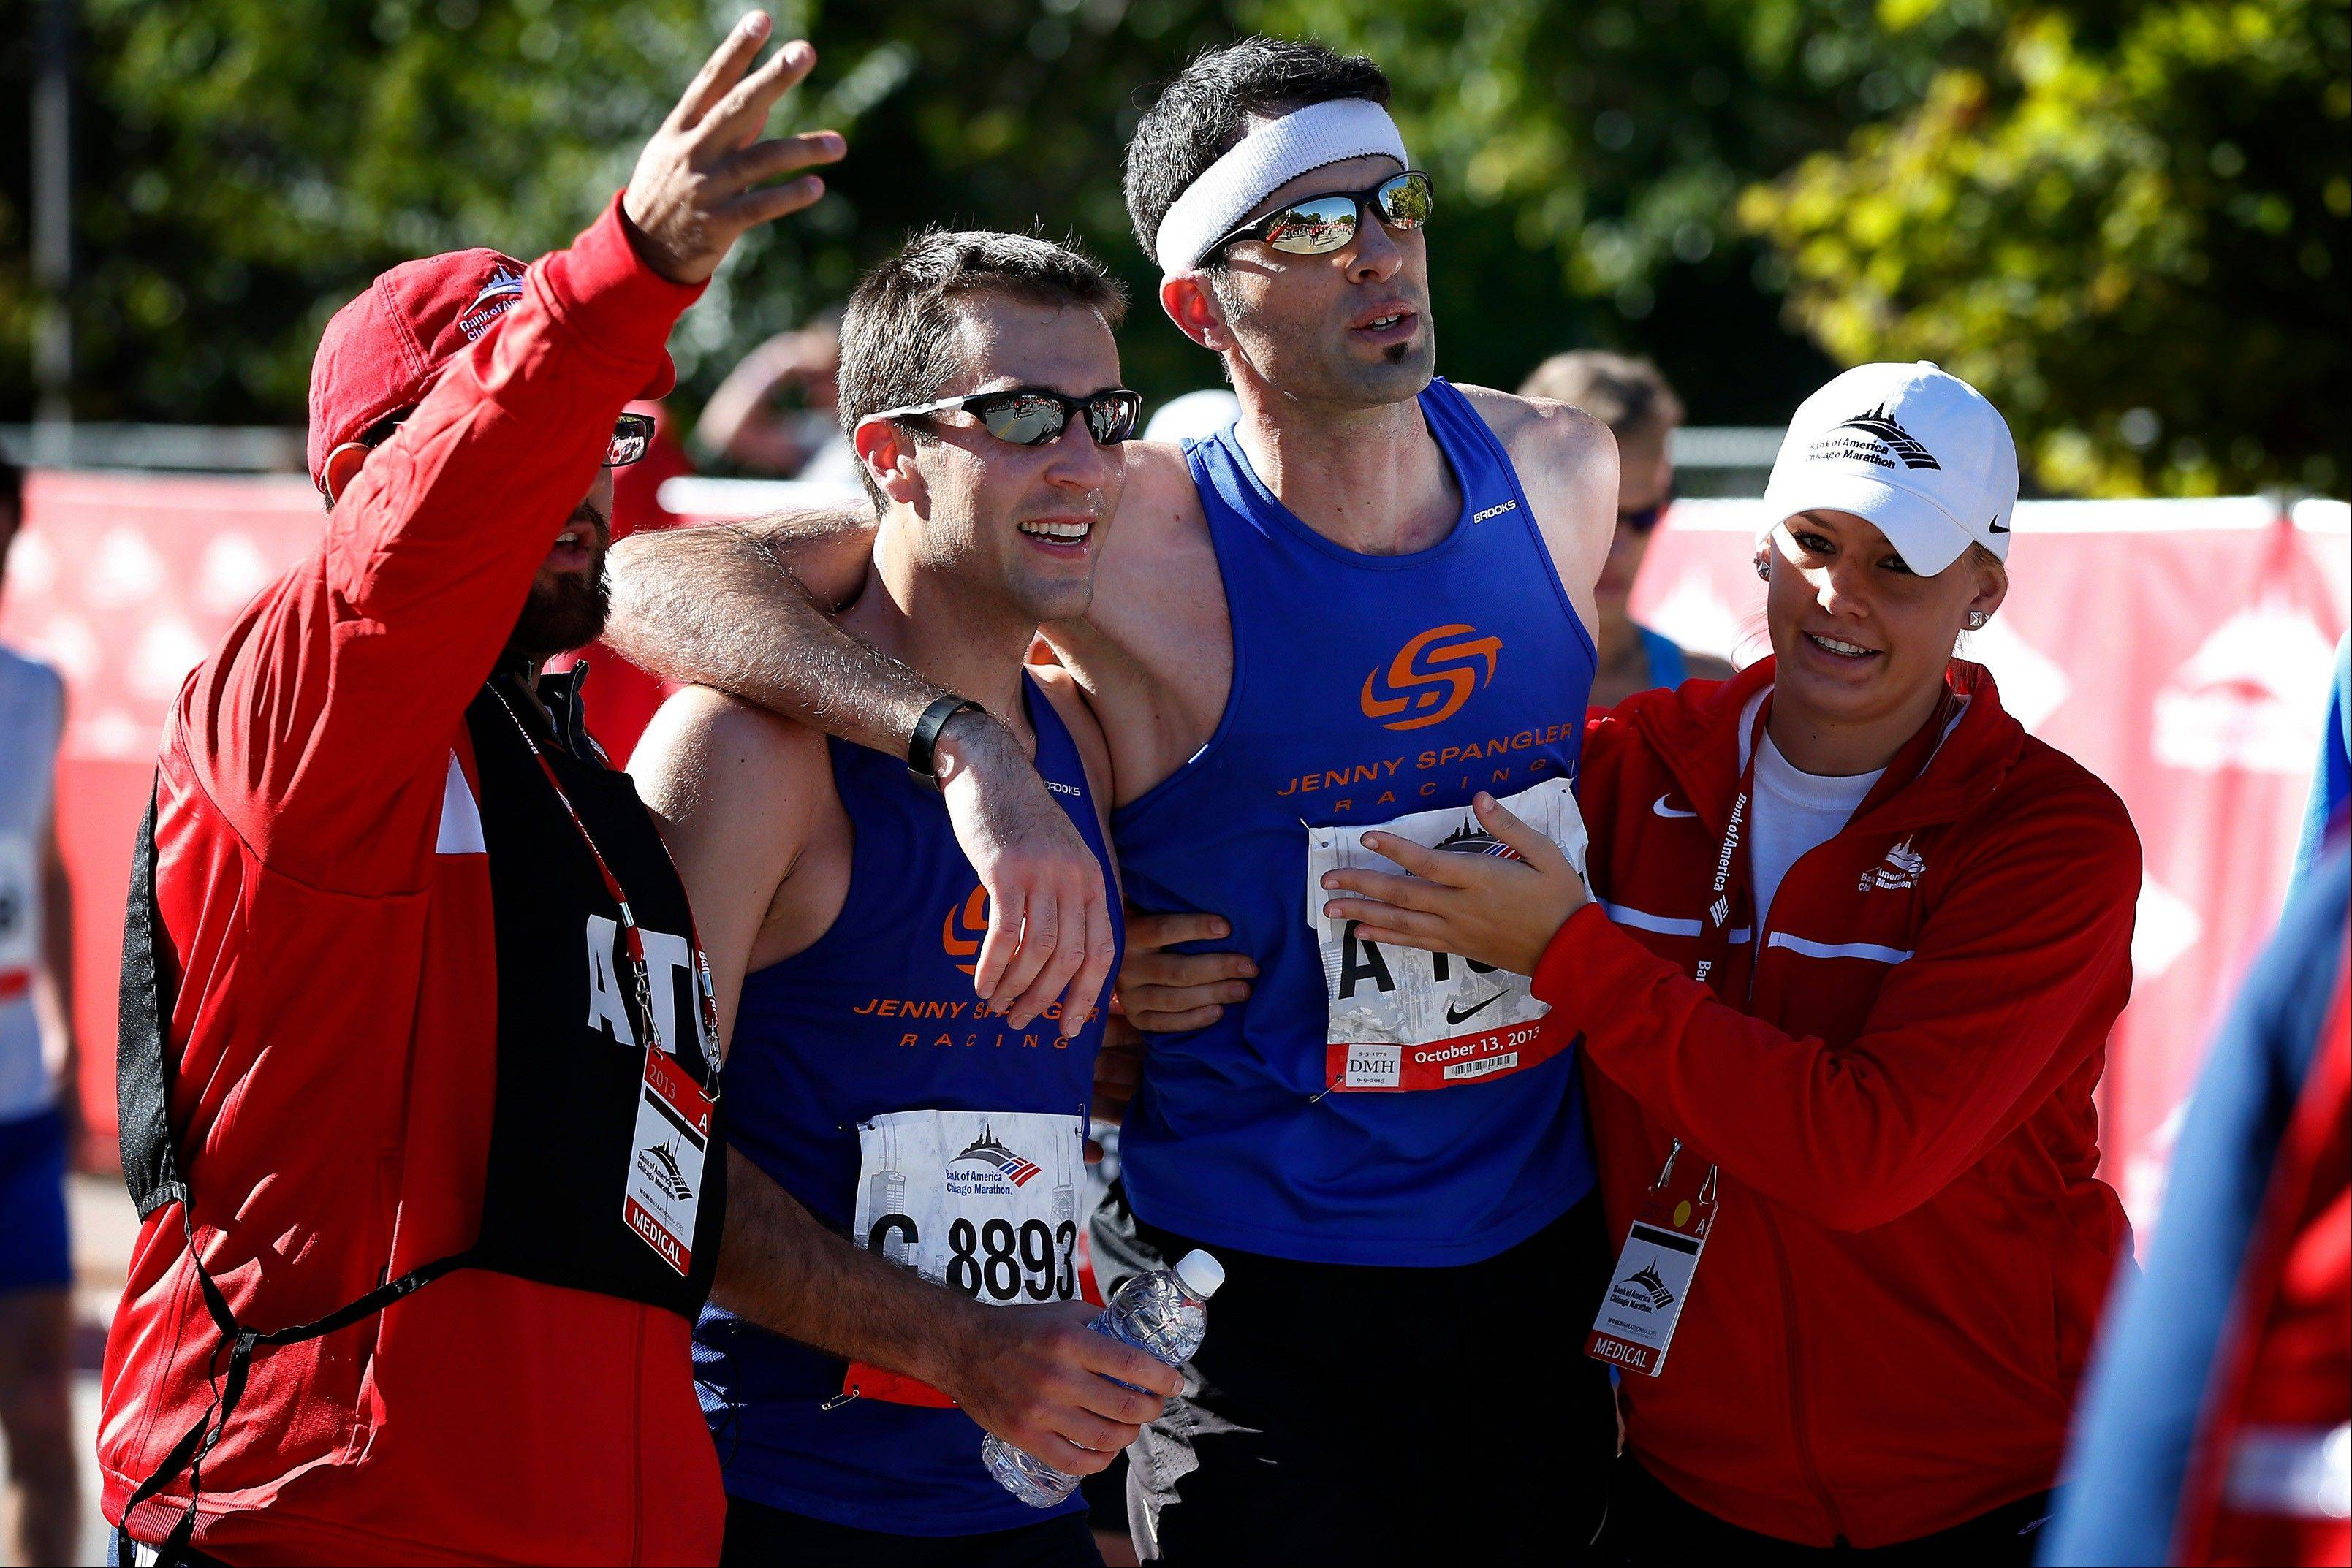 Lytle Smith, center left, of Evanston and David Zeisler, center right, of Gurnee are assisted at the finish line during the Chicago Marathon on Sunday.